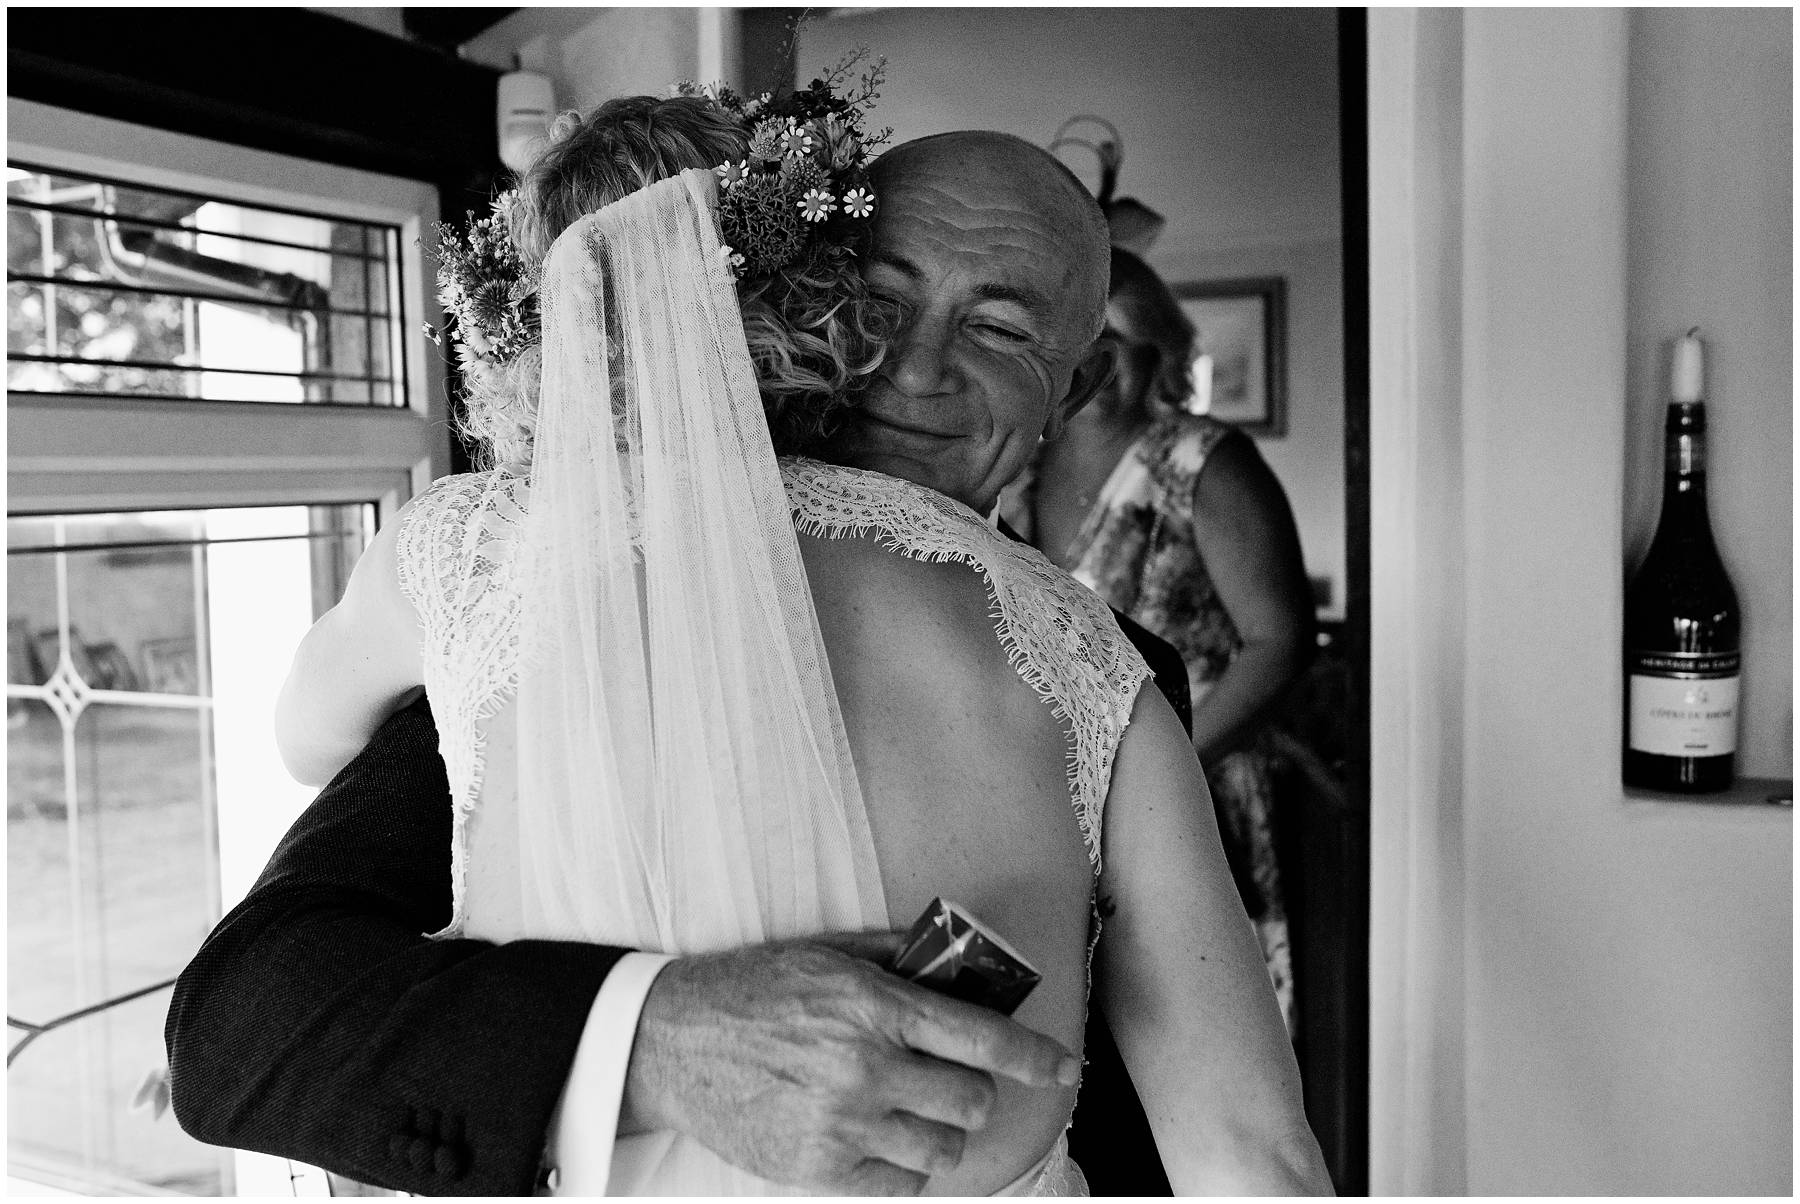 Dad hugging his daughter on her wedding day